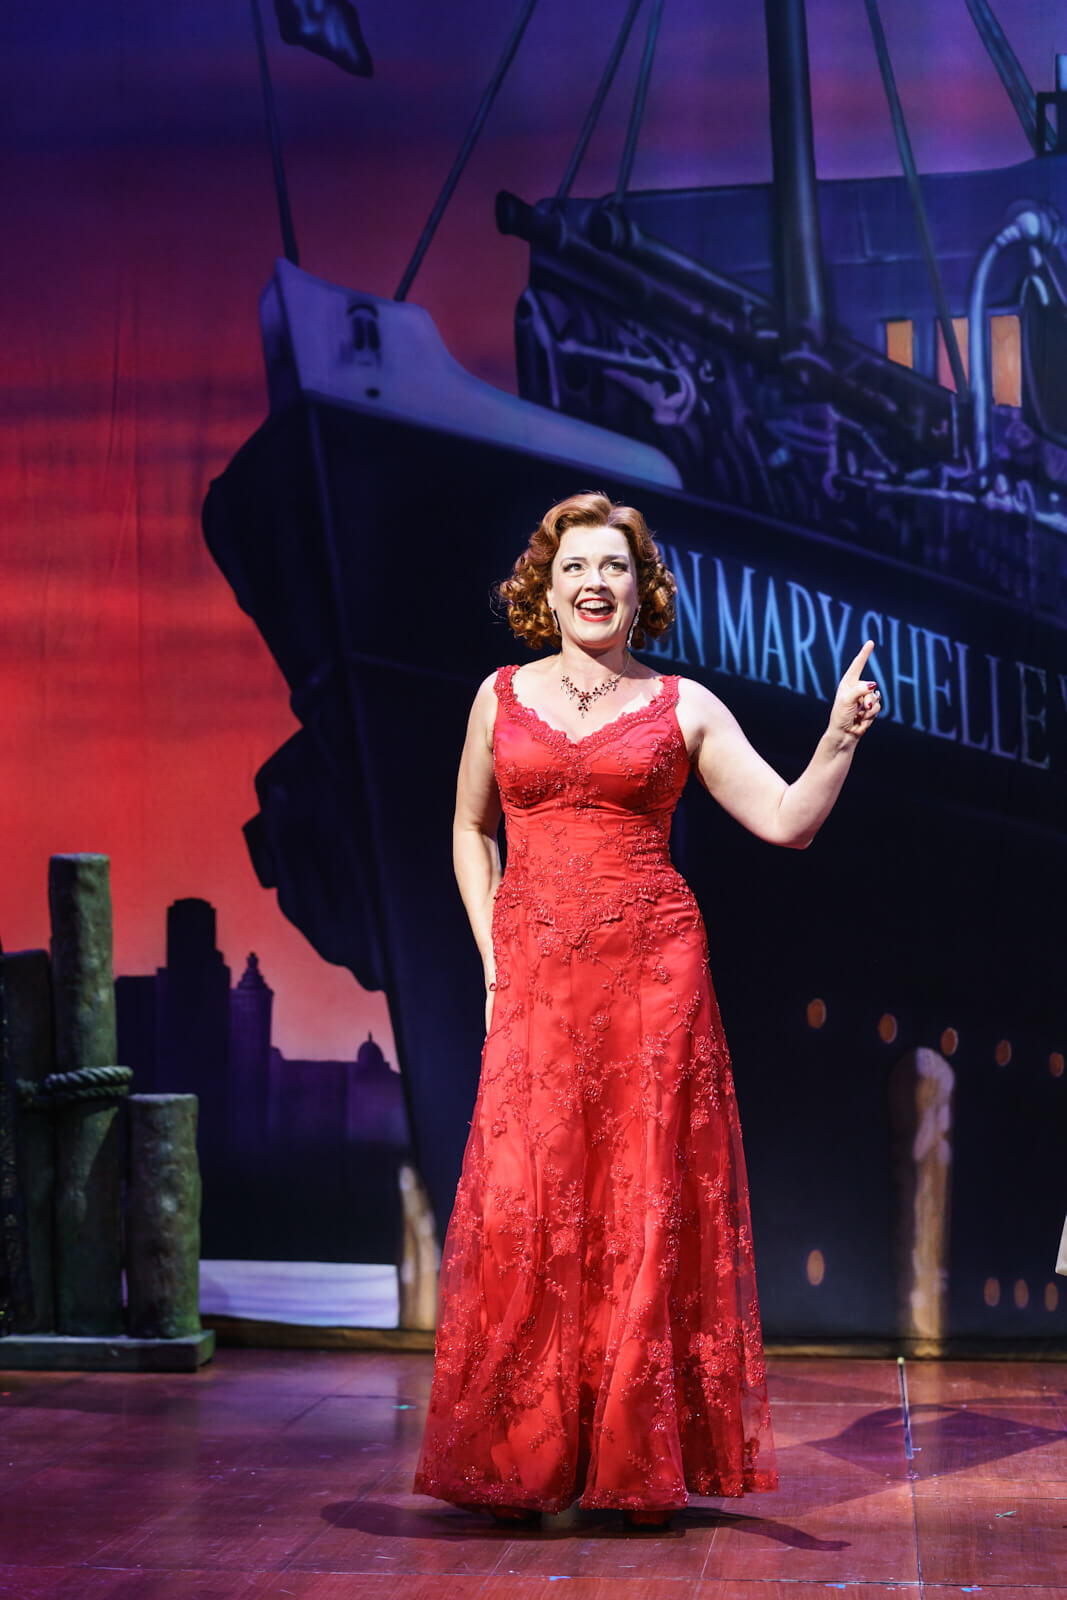 Elizabeth (Dianne Pilkington) is in a beautiful red dress saying goodbye to Frederick on the dock before he sails away to Transylvania.